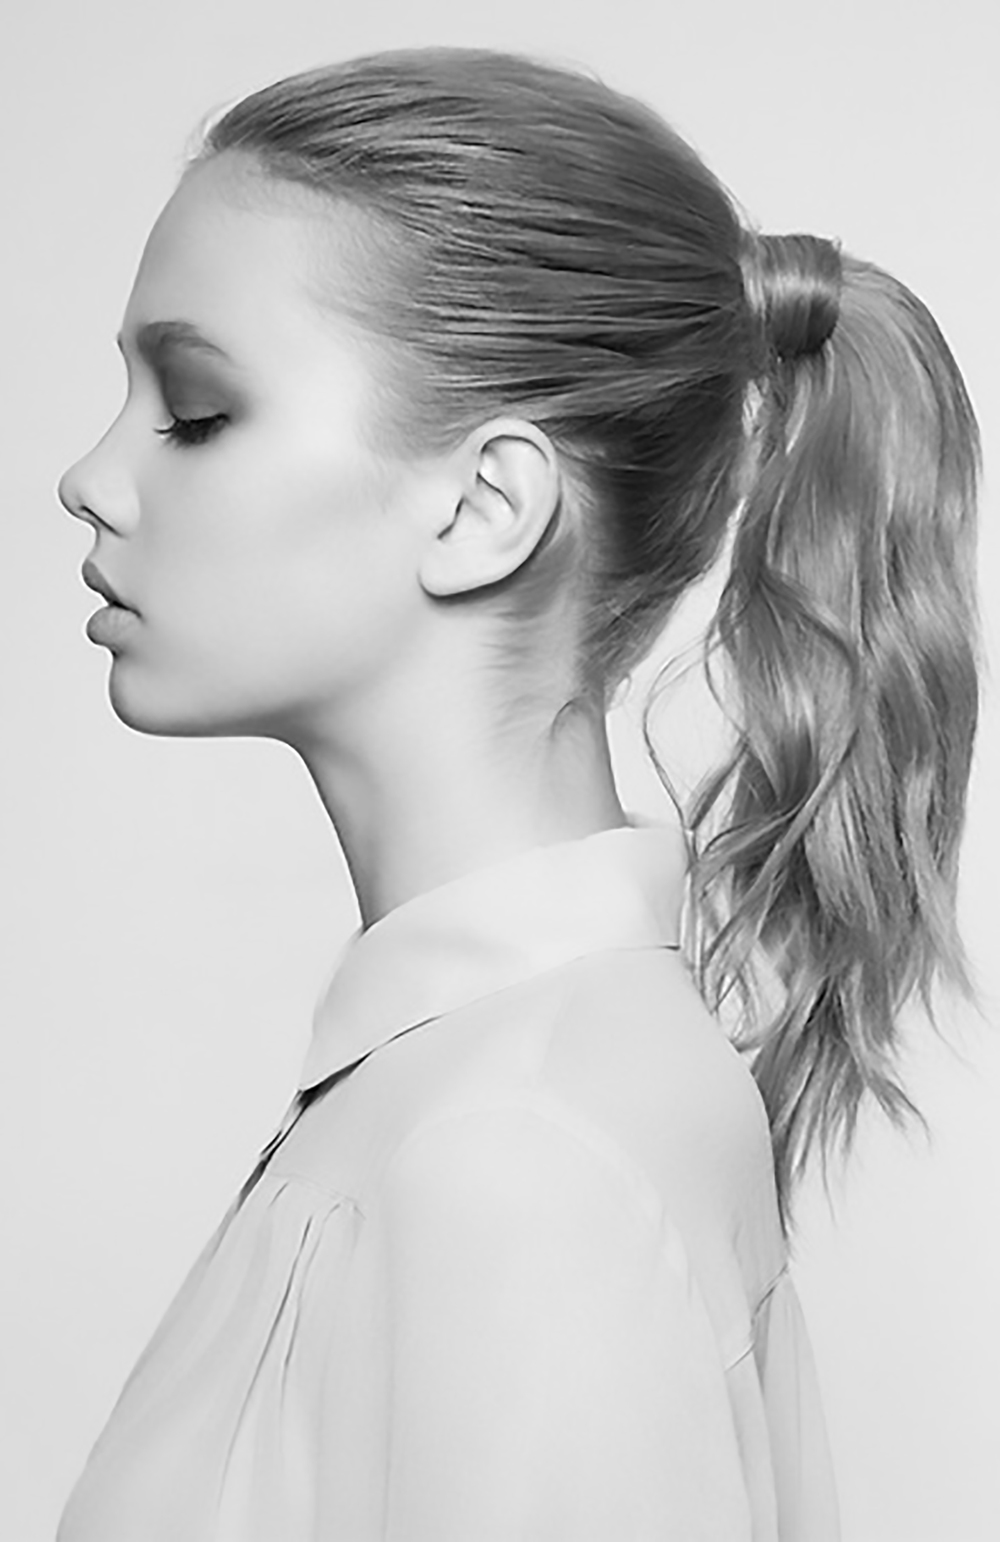 collagevintage ponytails 5 25 2013 1500.jpg